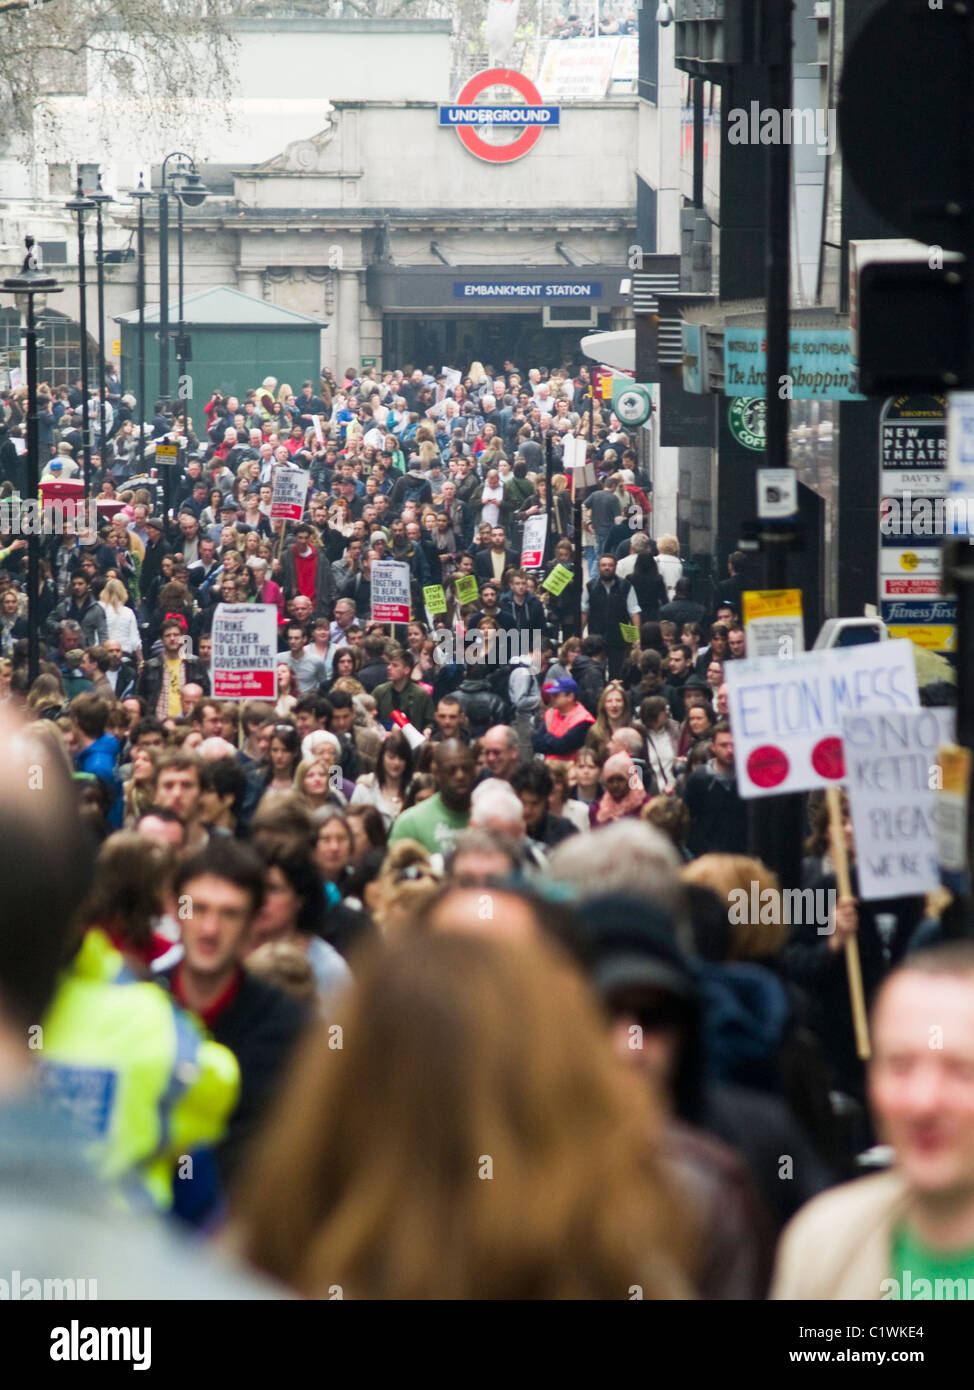 Protesters waling up Villiers Street as they take part in a demonstration against Government cuts in London. - Stock Image